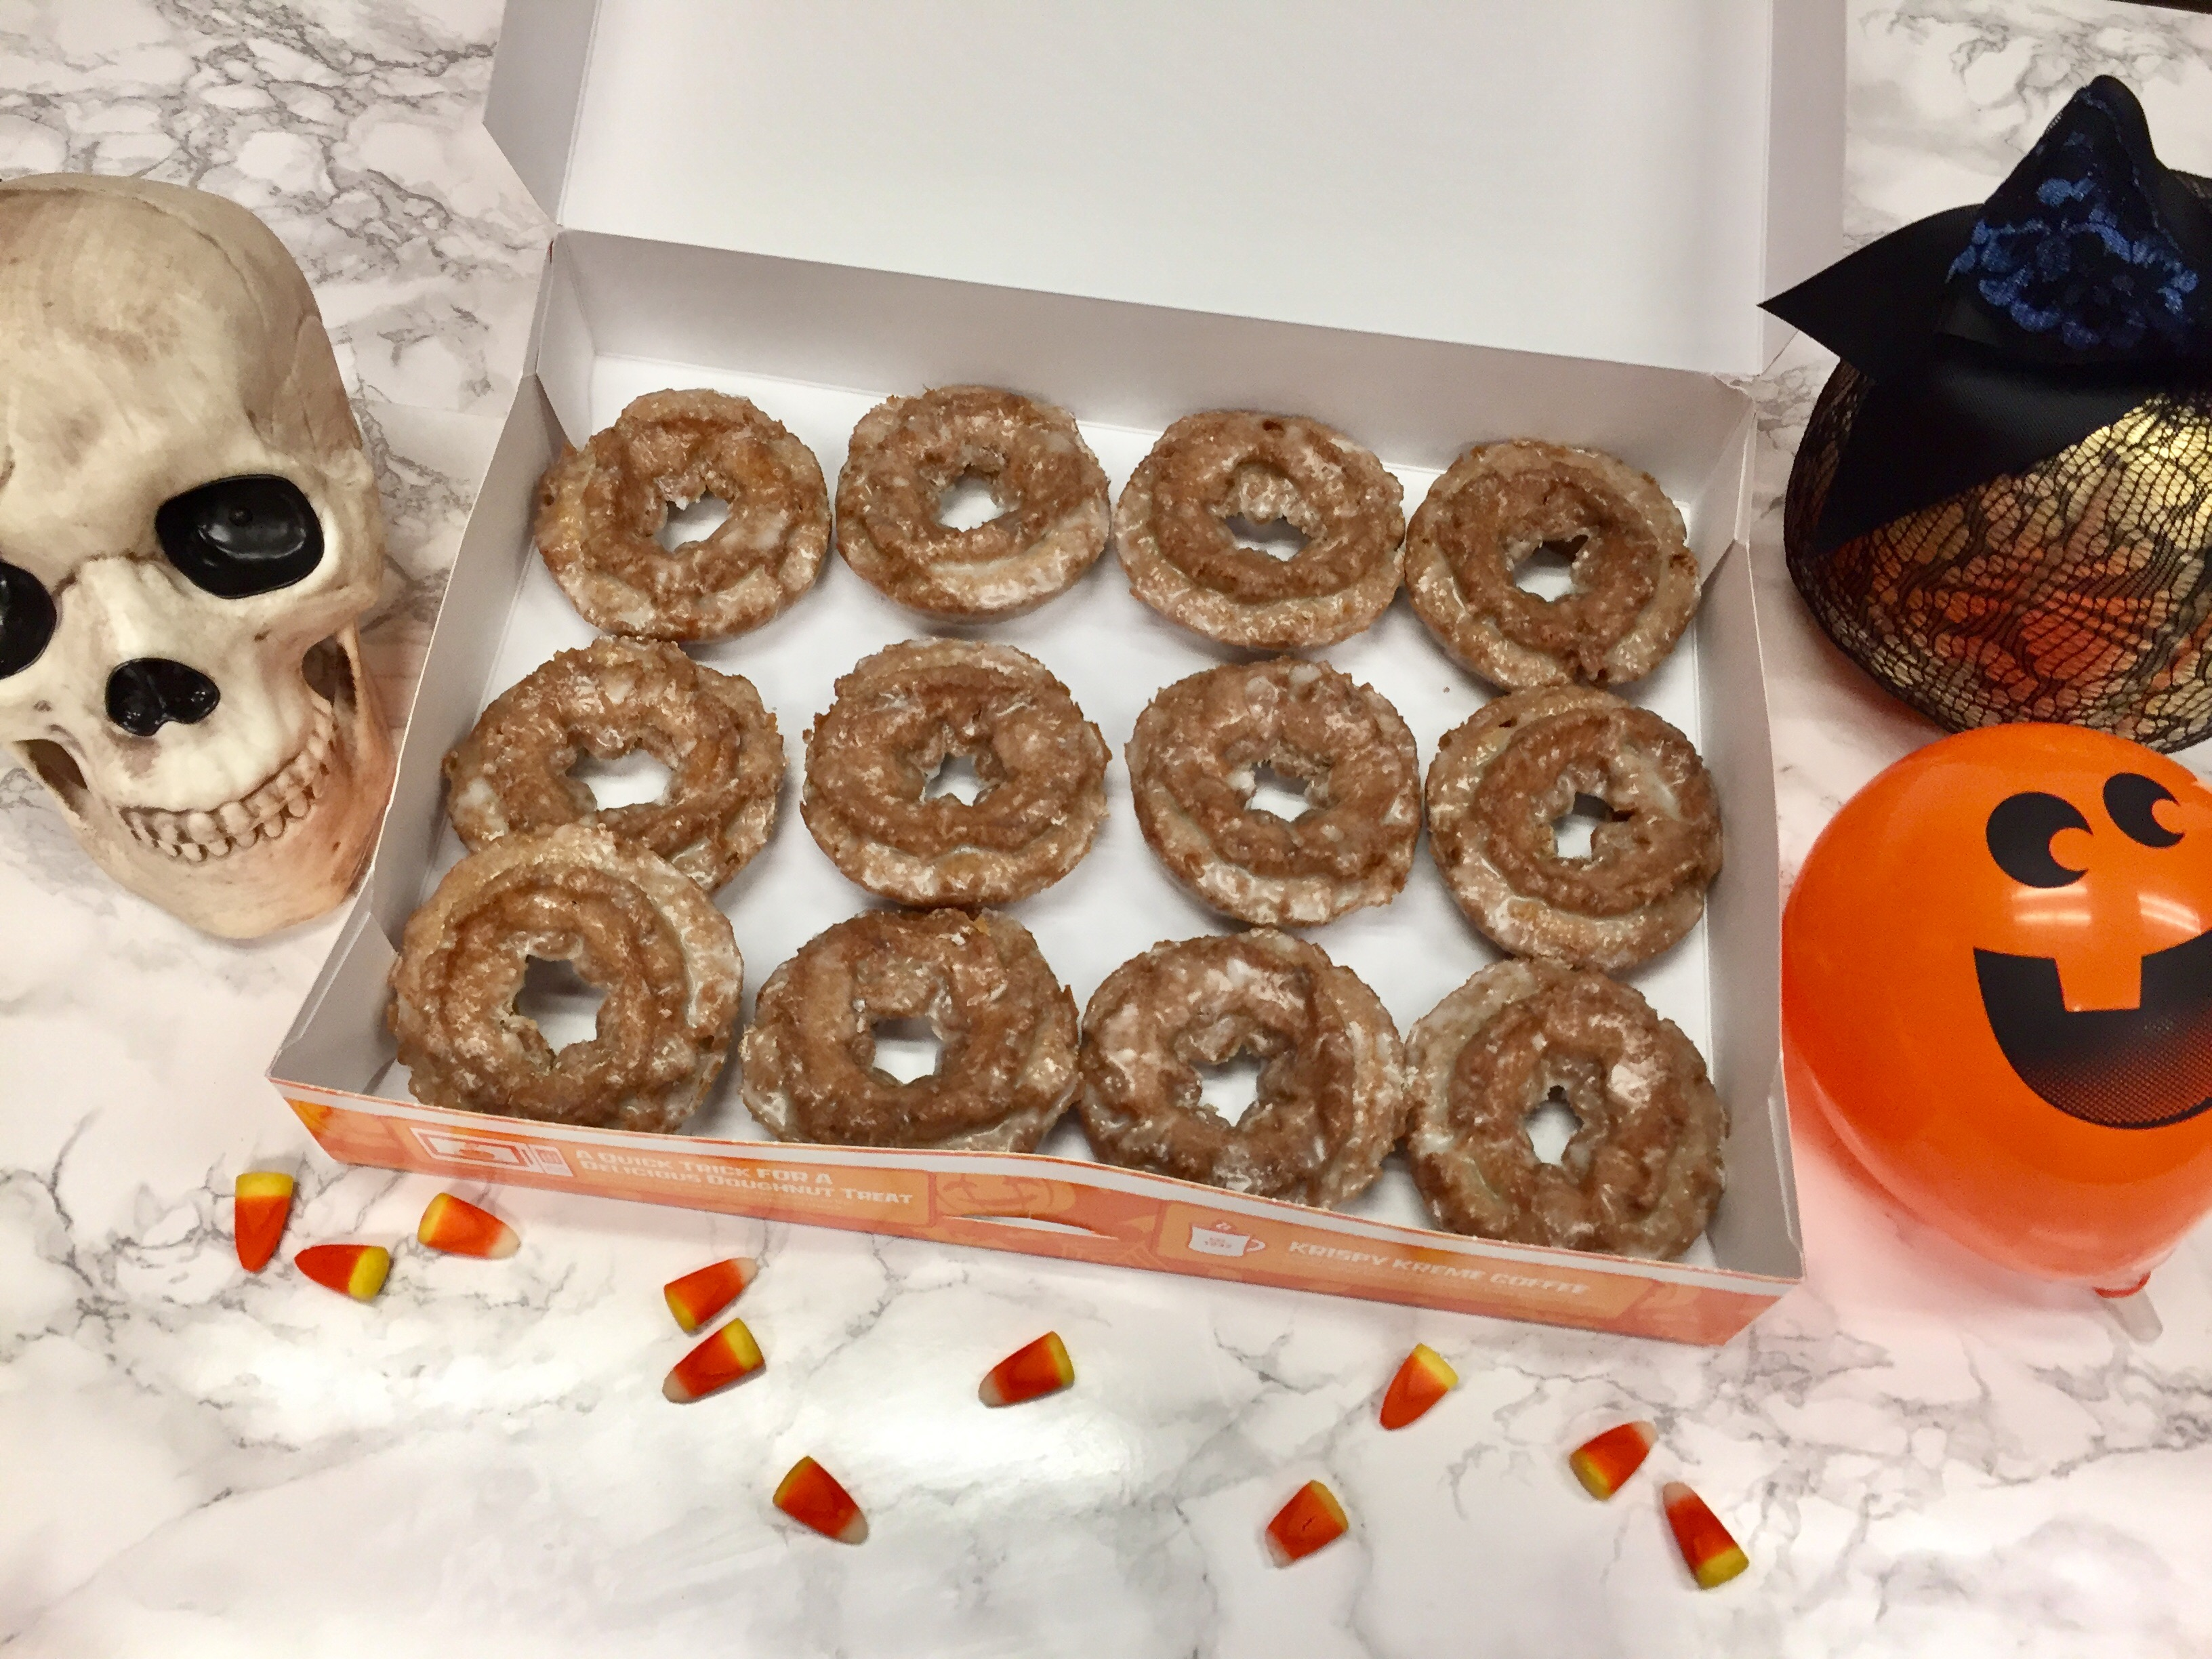 We tried Krispy Kreme's pumpkin spice donuts, and we're here to tell you they're DELICIOUS